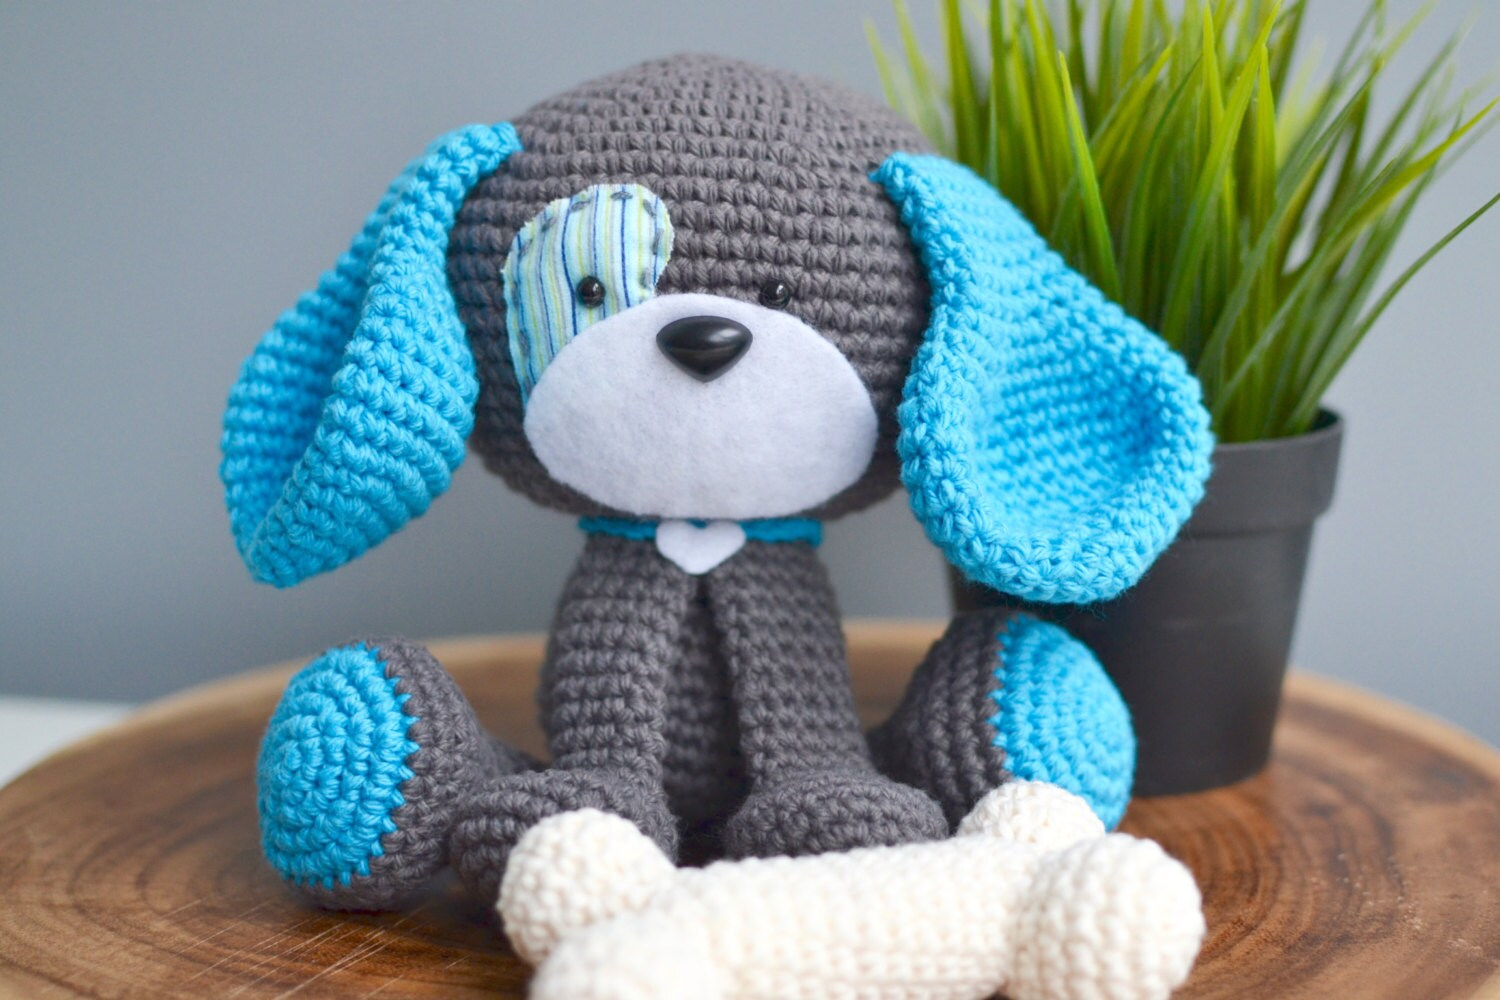 Amigurumi Crochet Pattern : Cute dog crochet pattern. domino the dog amigurumi crochet